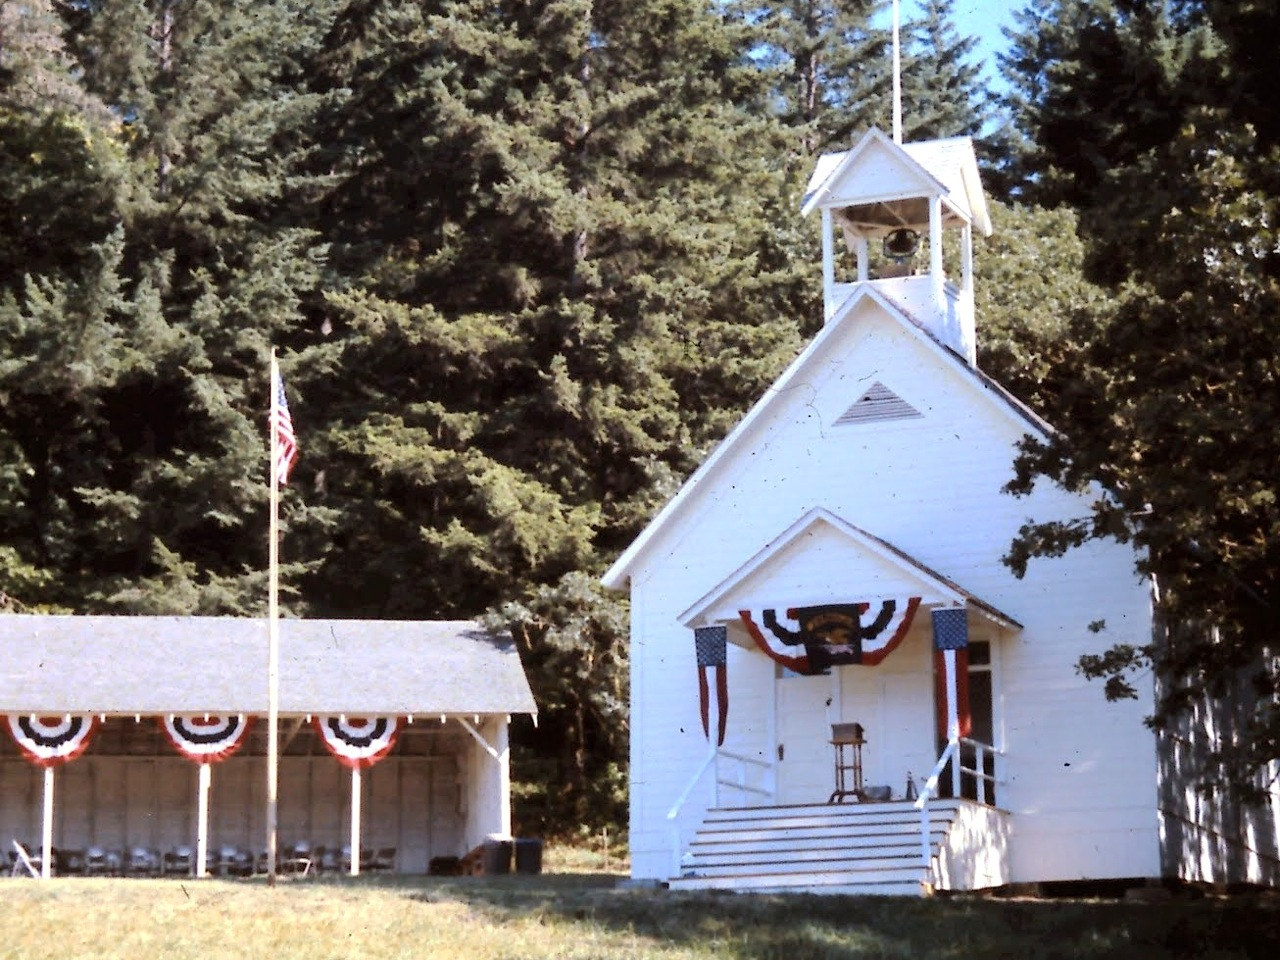 Valley View School at Dedication in 1989